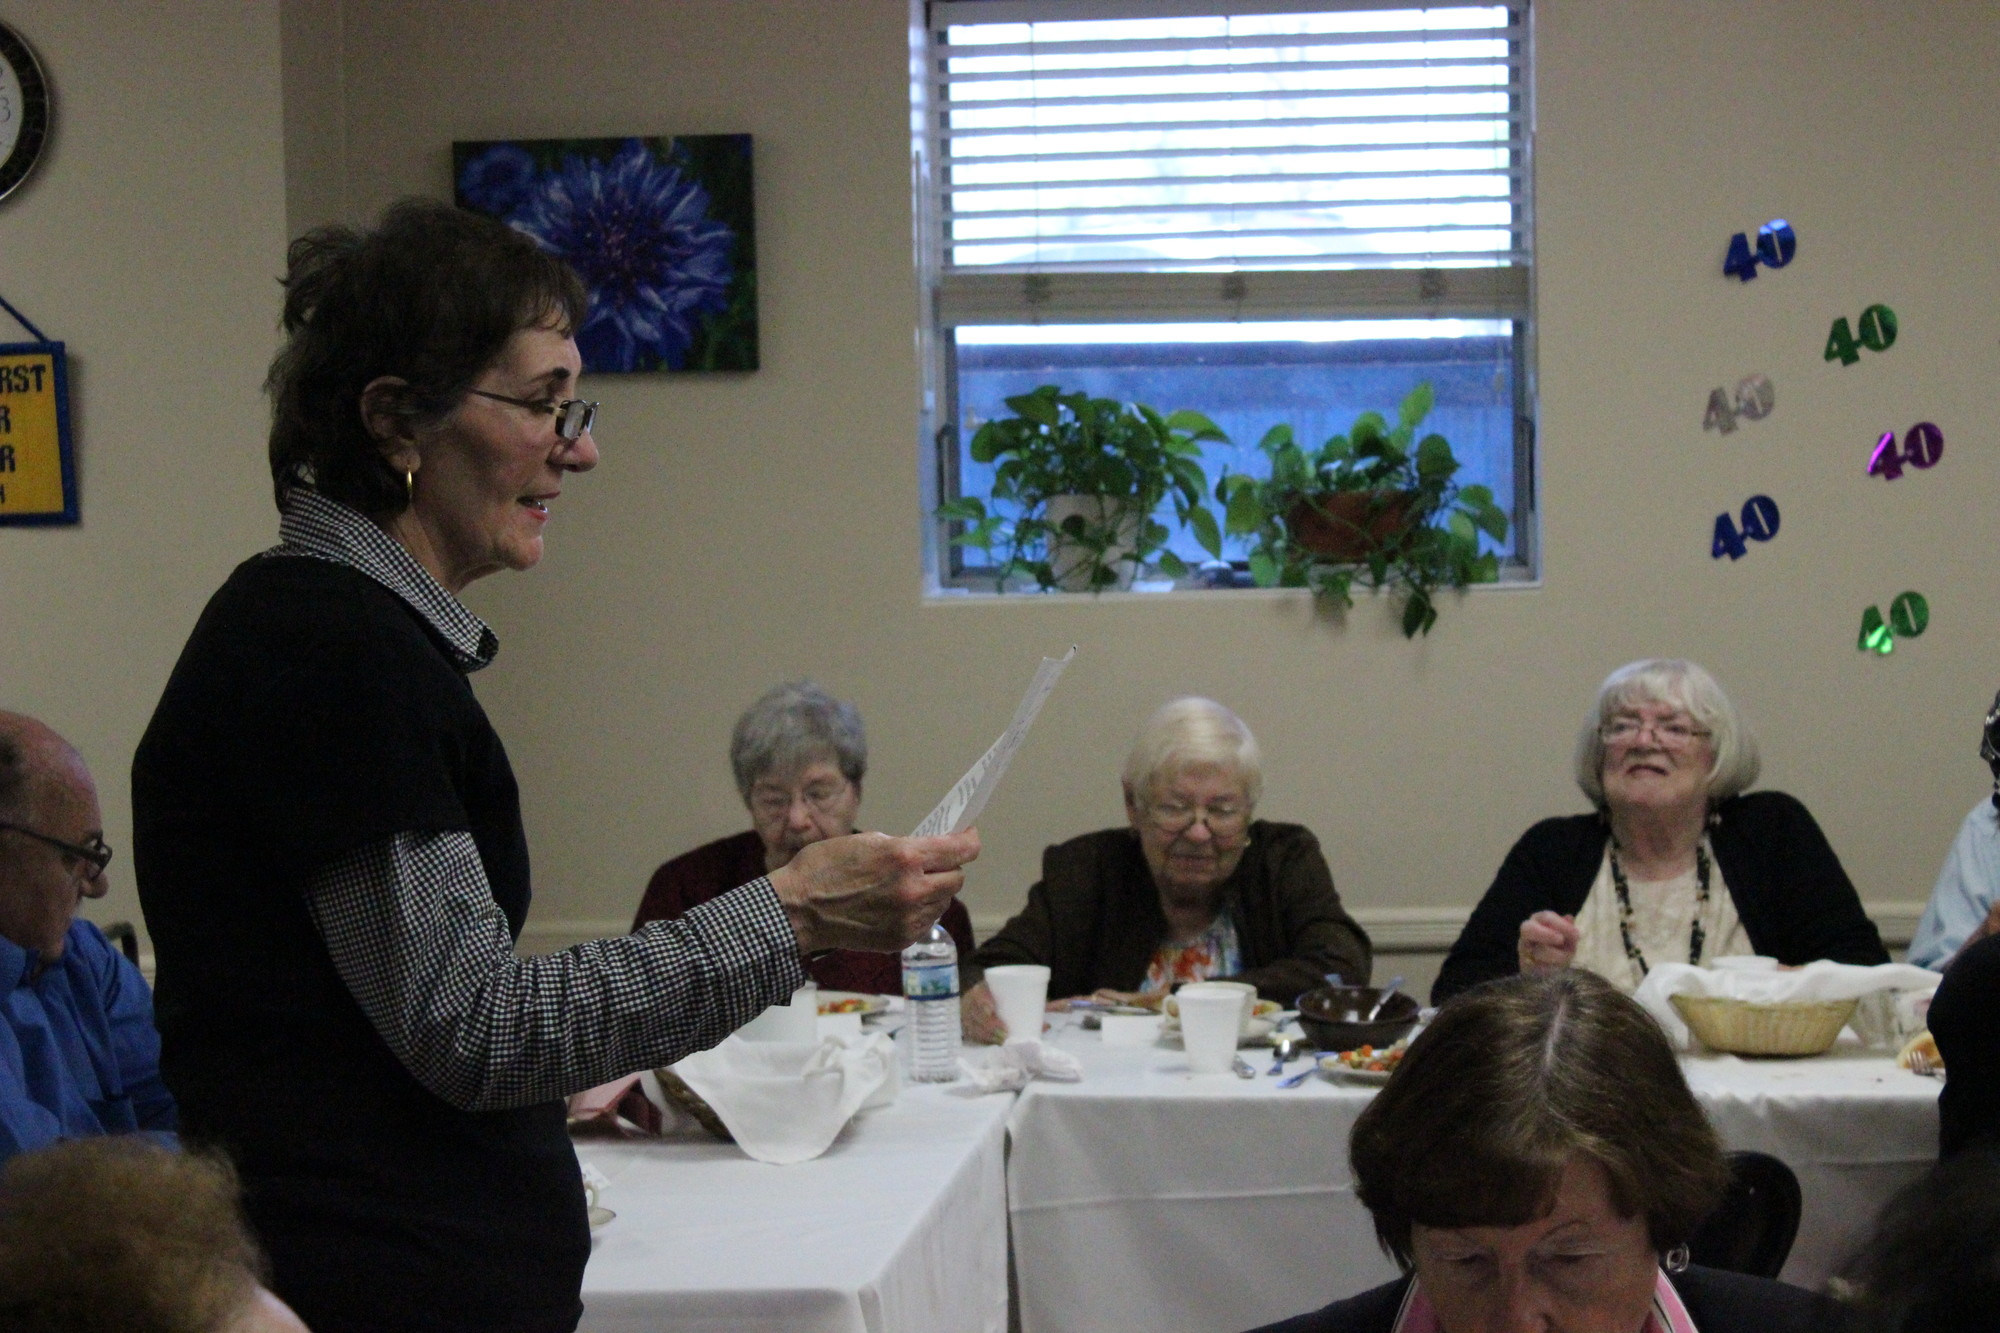 The Village of Cedarhurst senior center celebrated its 40th anniversary Monday. Woodmere resident Rosalie Benenati expressed her appreciation for the center's programs.